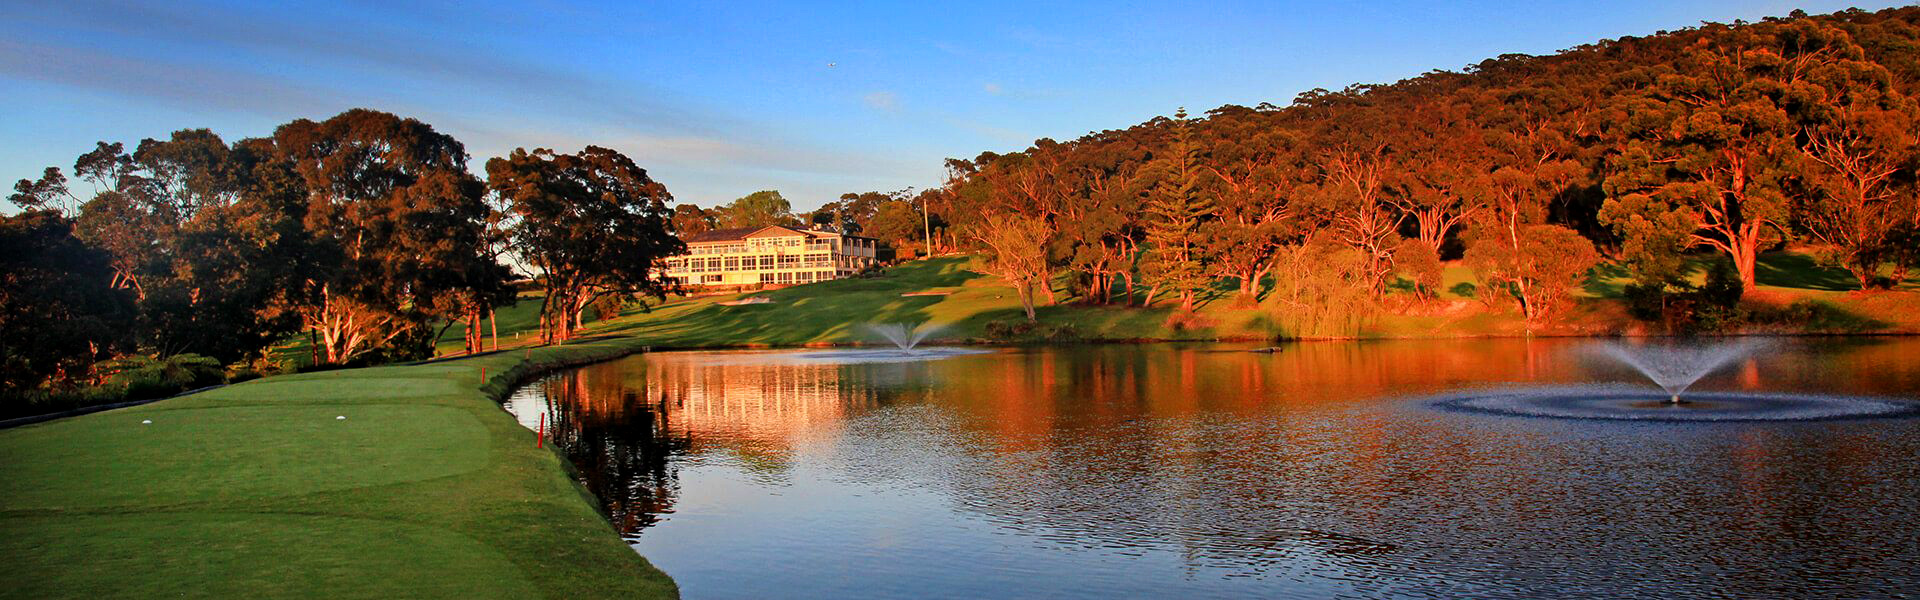 Monash-Country-Club_7.jpg